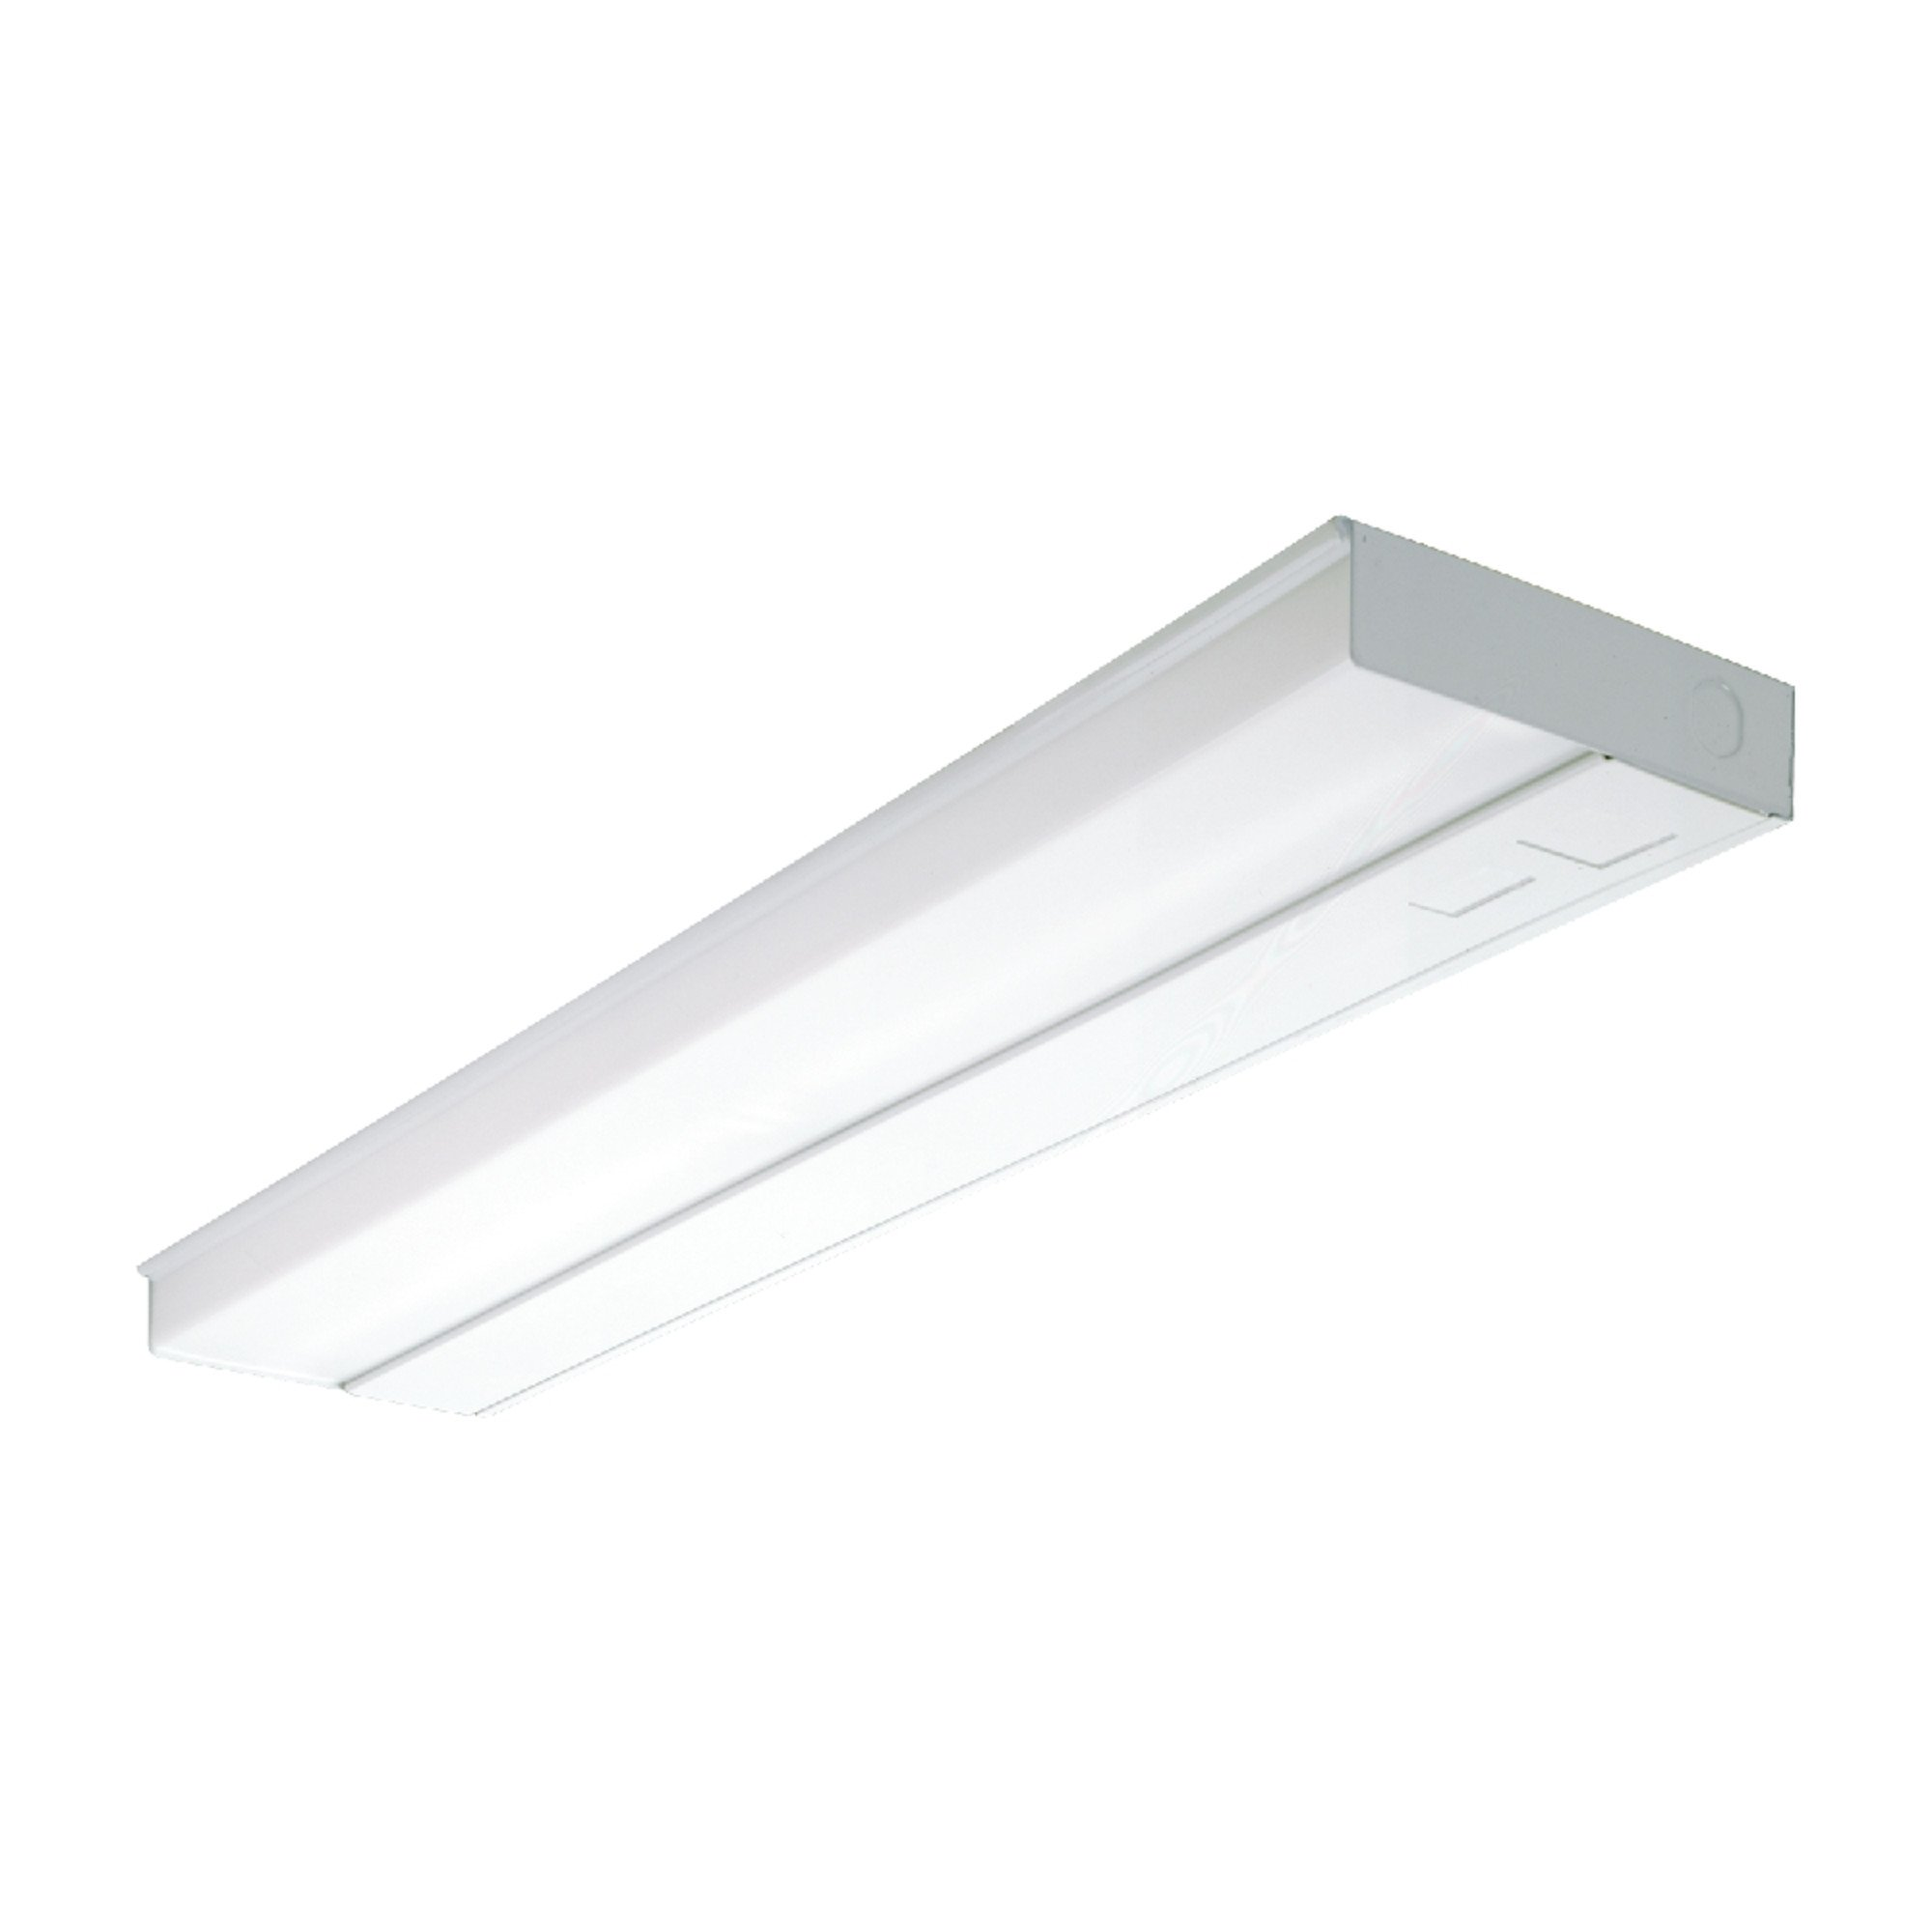 Metalux UC48T8132 UC Series Fluorescent Undercabinet Light Fixture, 48'', 1 Lamp, T8, 32W, 120V, Electronic Ballast Lamp Included